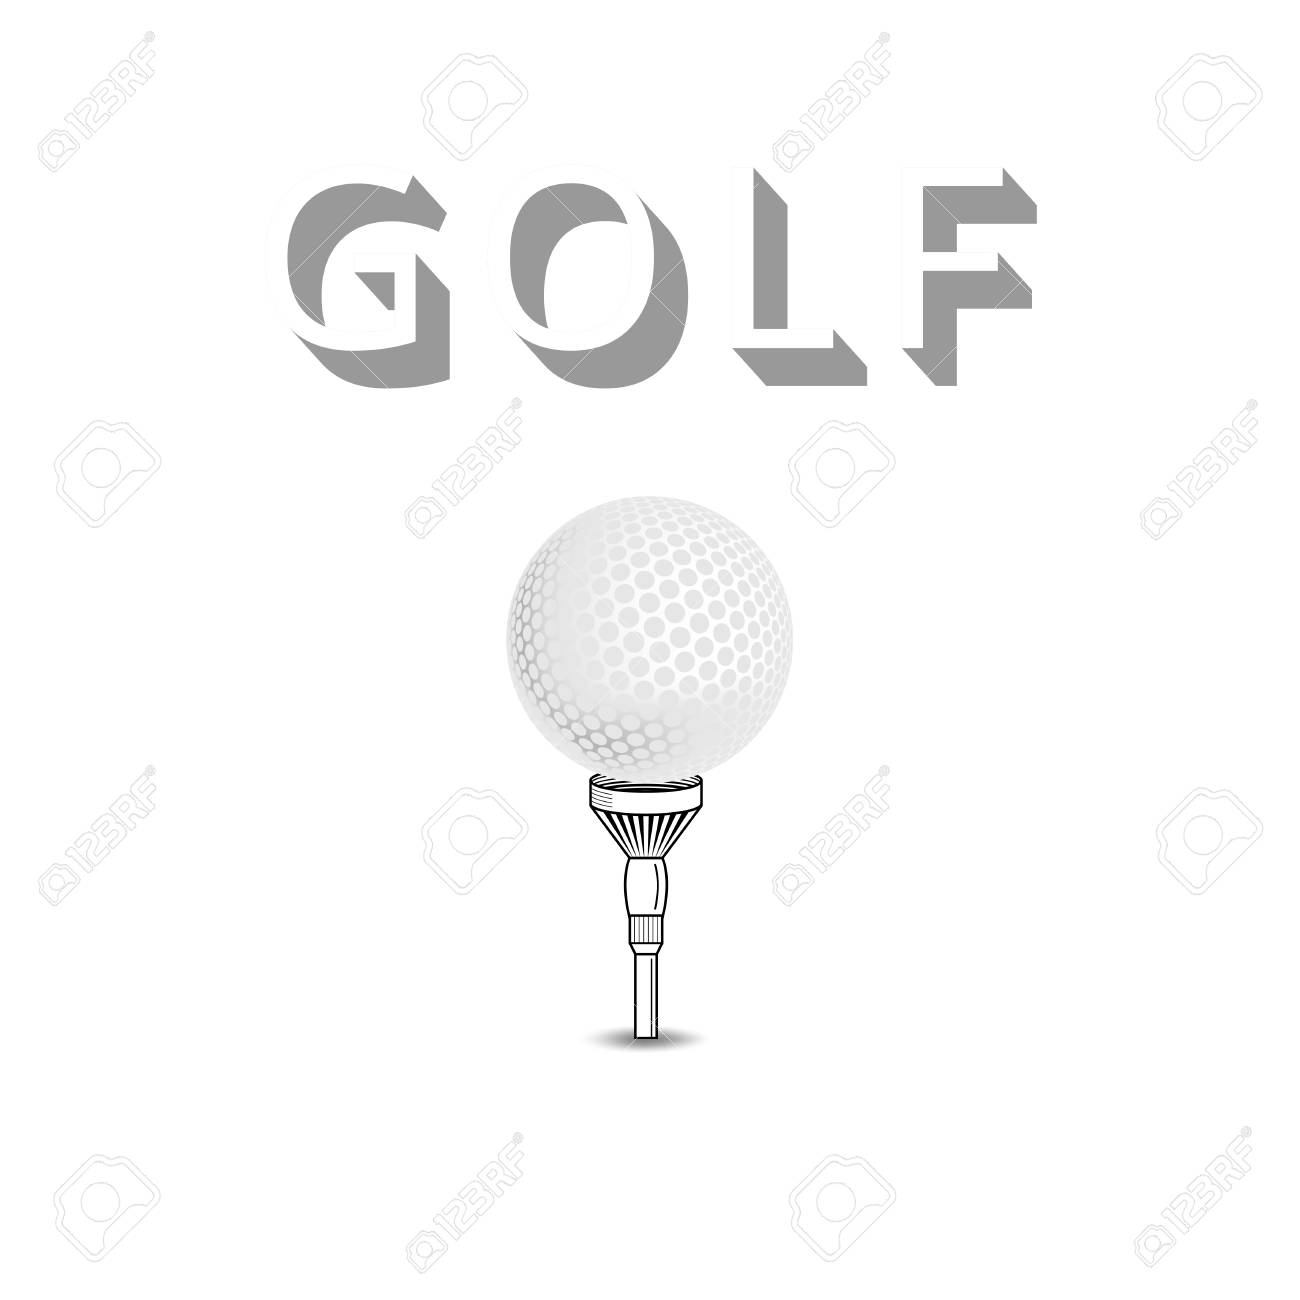 46e6f8e7 Golf ball on white tee realistic vector illustration isolated. Vector golf  ball isolated on white